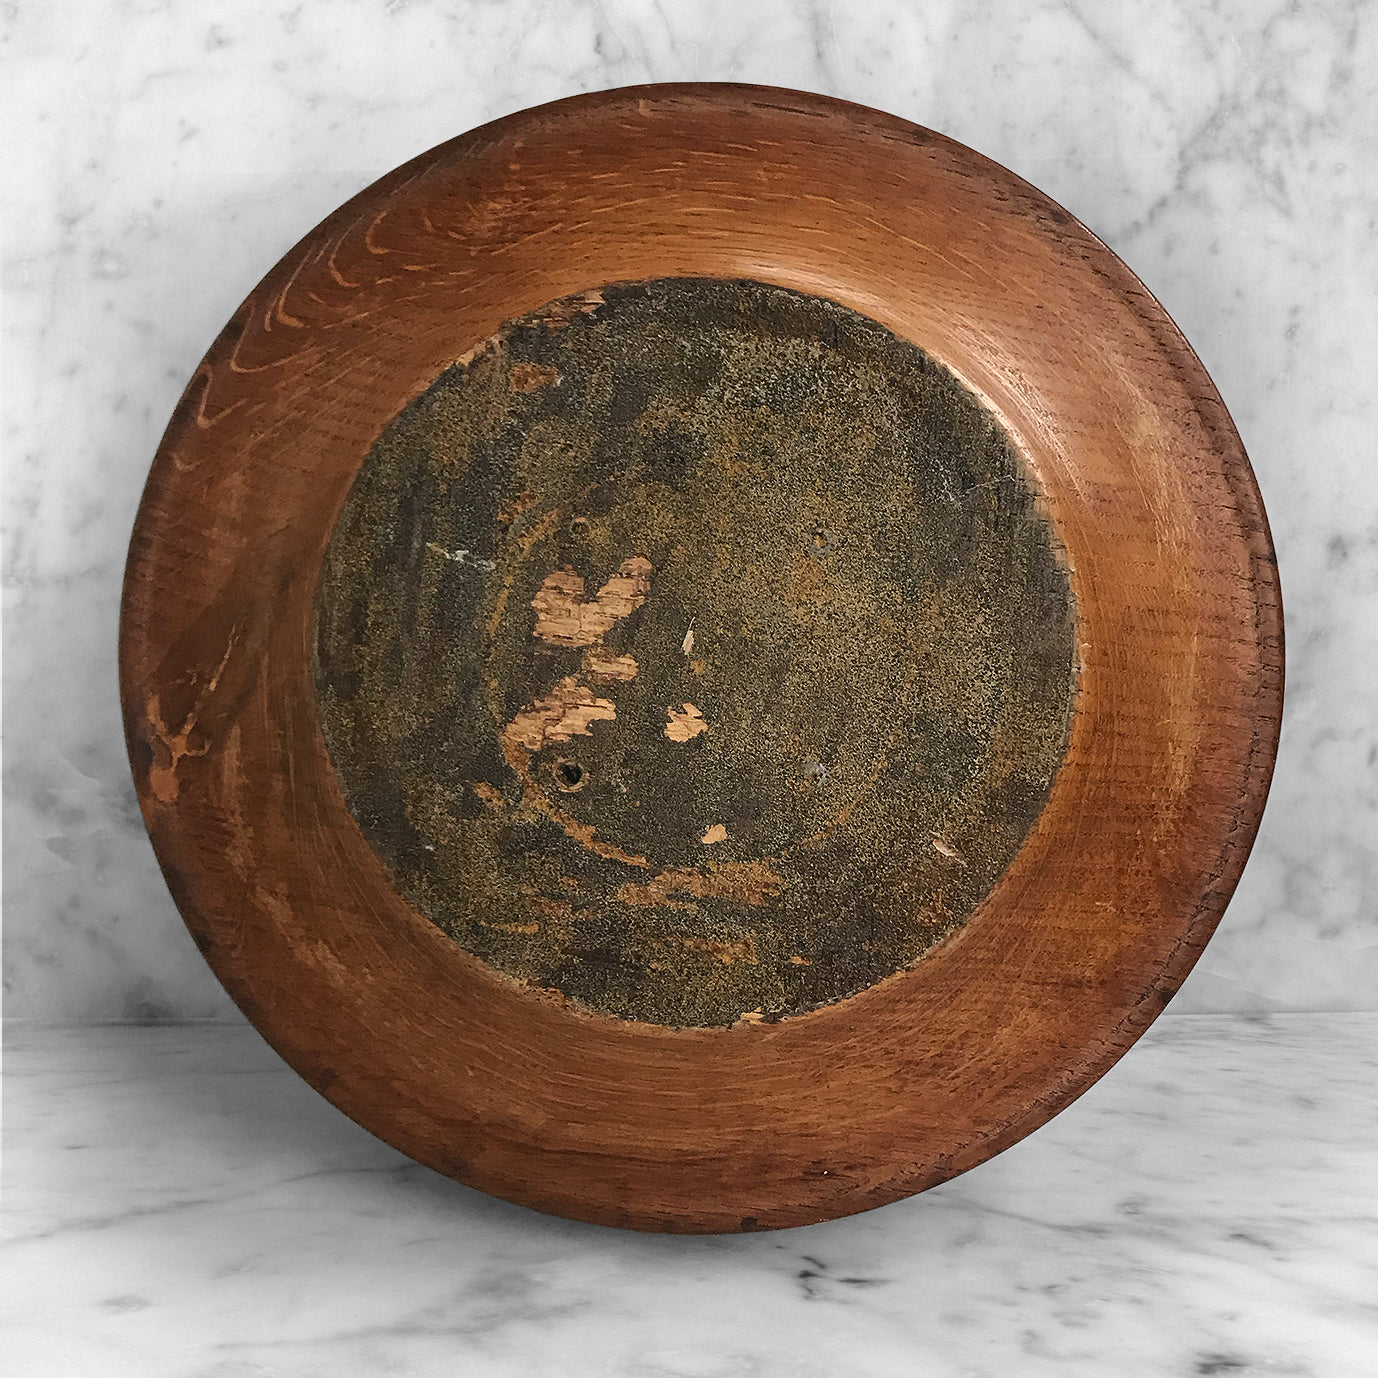 Antique Oak Table Bowl. Great size and shape with a beautiful warm colour. The profile of the bowl gives the bowl an age from around the 1930's - SHOP NOW - www.intovintage.co.uk